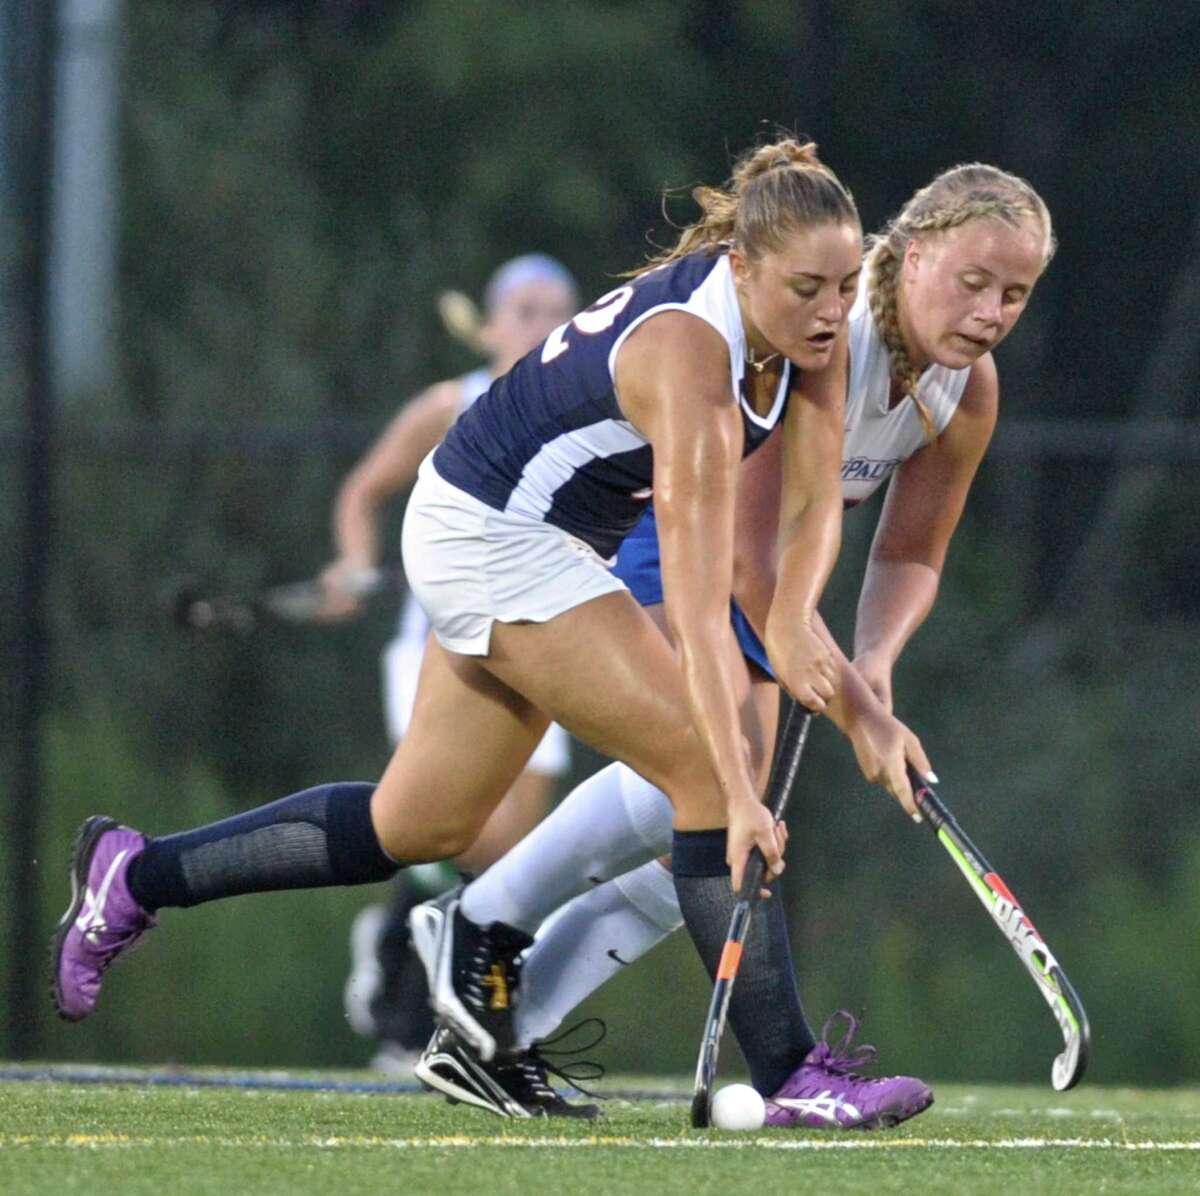 FILE PHOTO: Western's Jenny Cappello (12) and New Paltz's Jessica Caruana (16) battle for ball the during the SUNY New Paltz Hawks, Western Connecticut State University Colonials field hockey game on Tuesday, September 1, 2015, at the WCSU Westside Athletic Complex in Danbury, Conn.